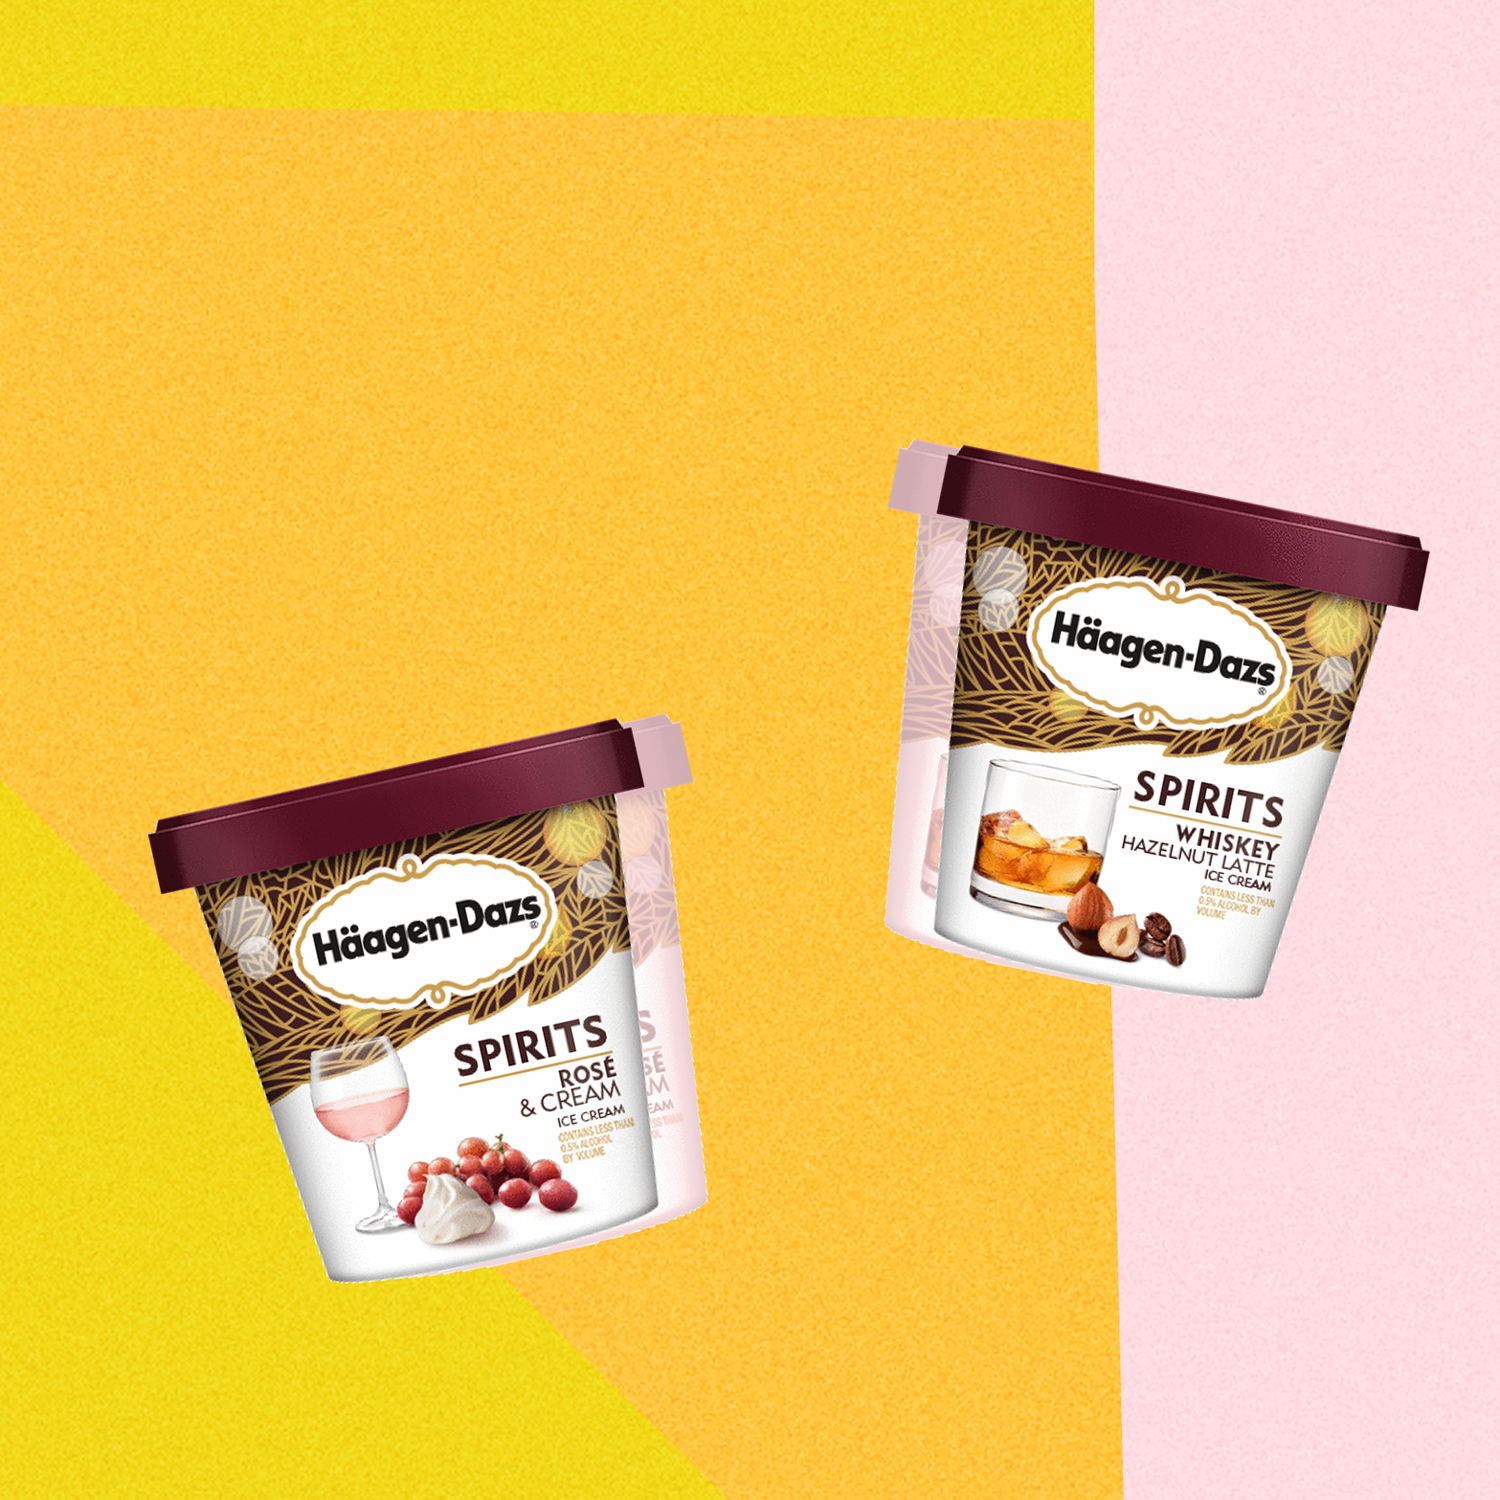 Häagen-Dazs Is Launching 2 New Boozy Ice Cream Flavors—and We Can't Wait to Try Them